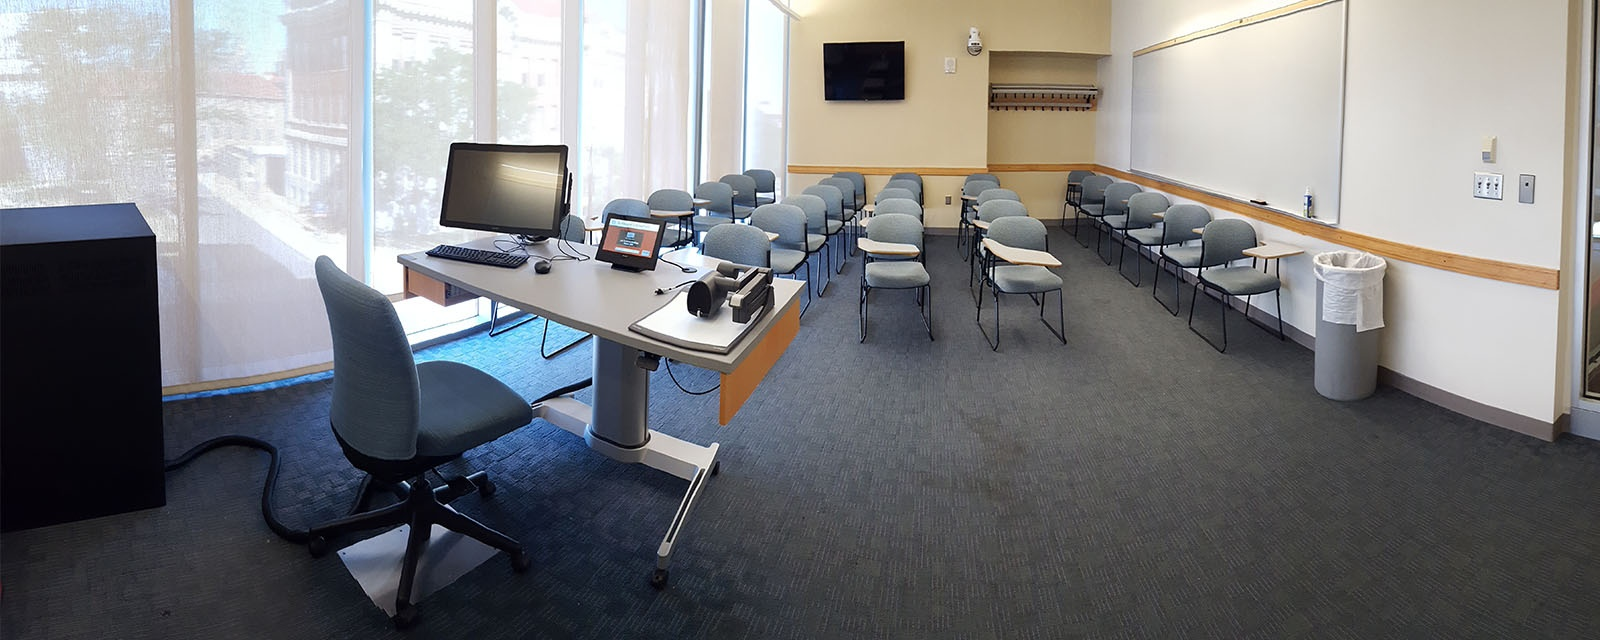 Panorama of Life Sciences 200 Front, moveable chairs, teaching station front left